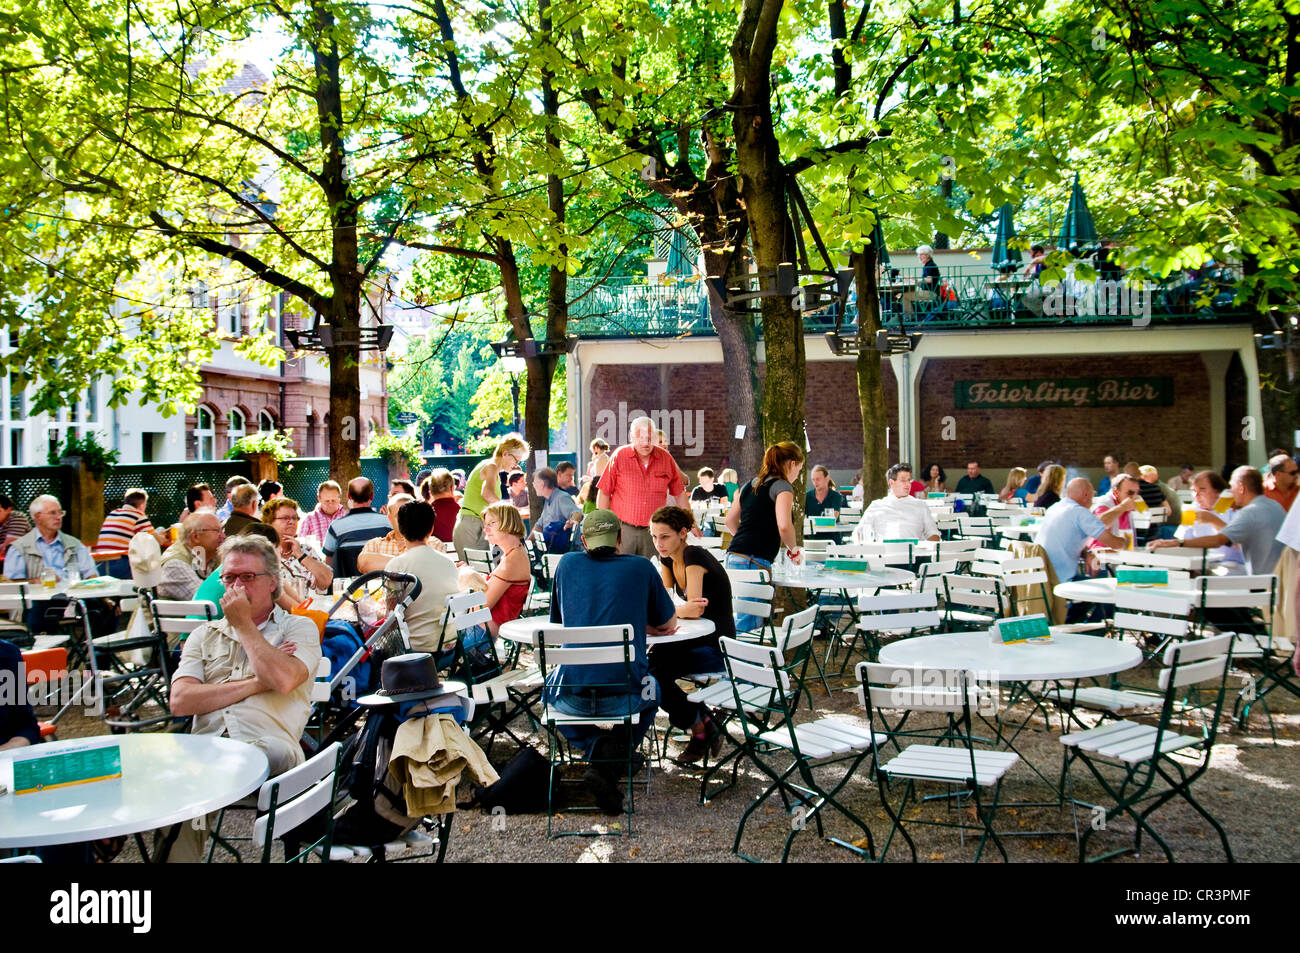 beer garden of feierling brewery freiburg baden wuerttemberg stock photo royalty free image. Black Bedroom Furniture Sets. Home Design Ideas